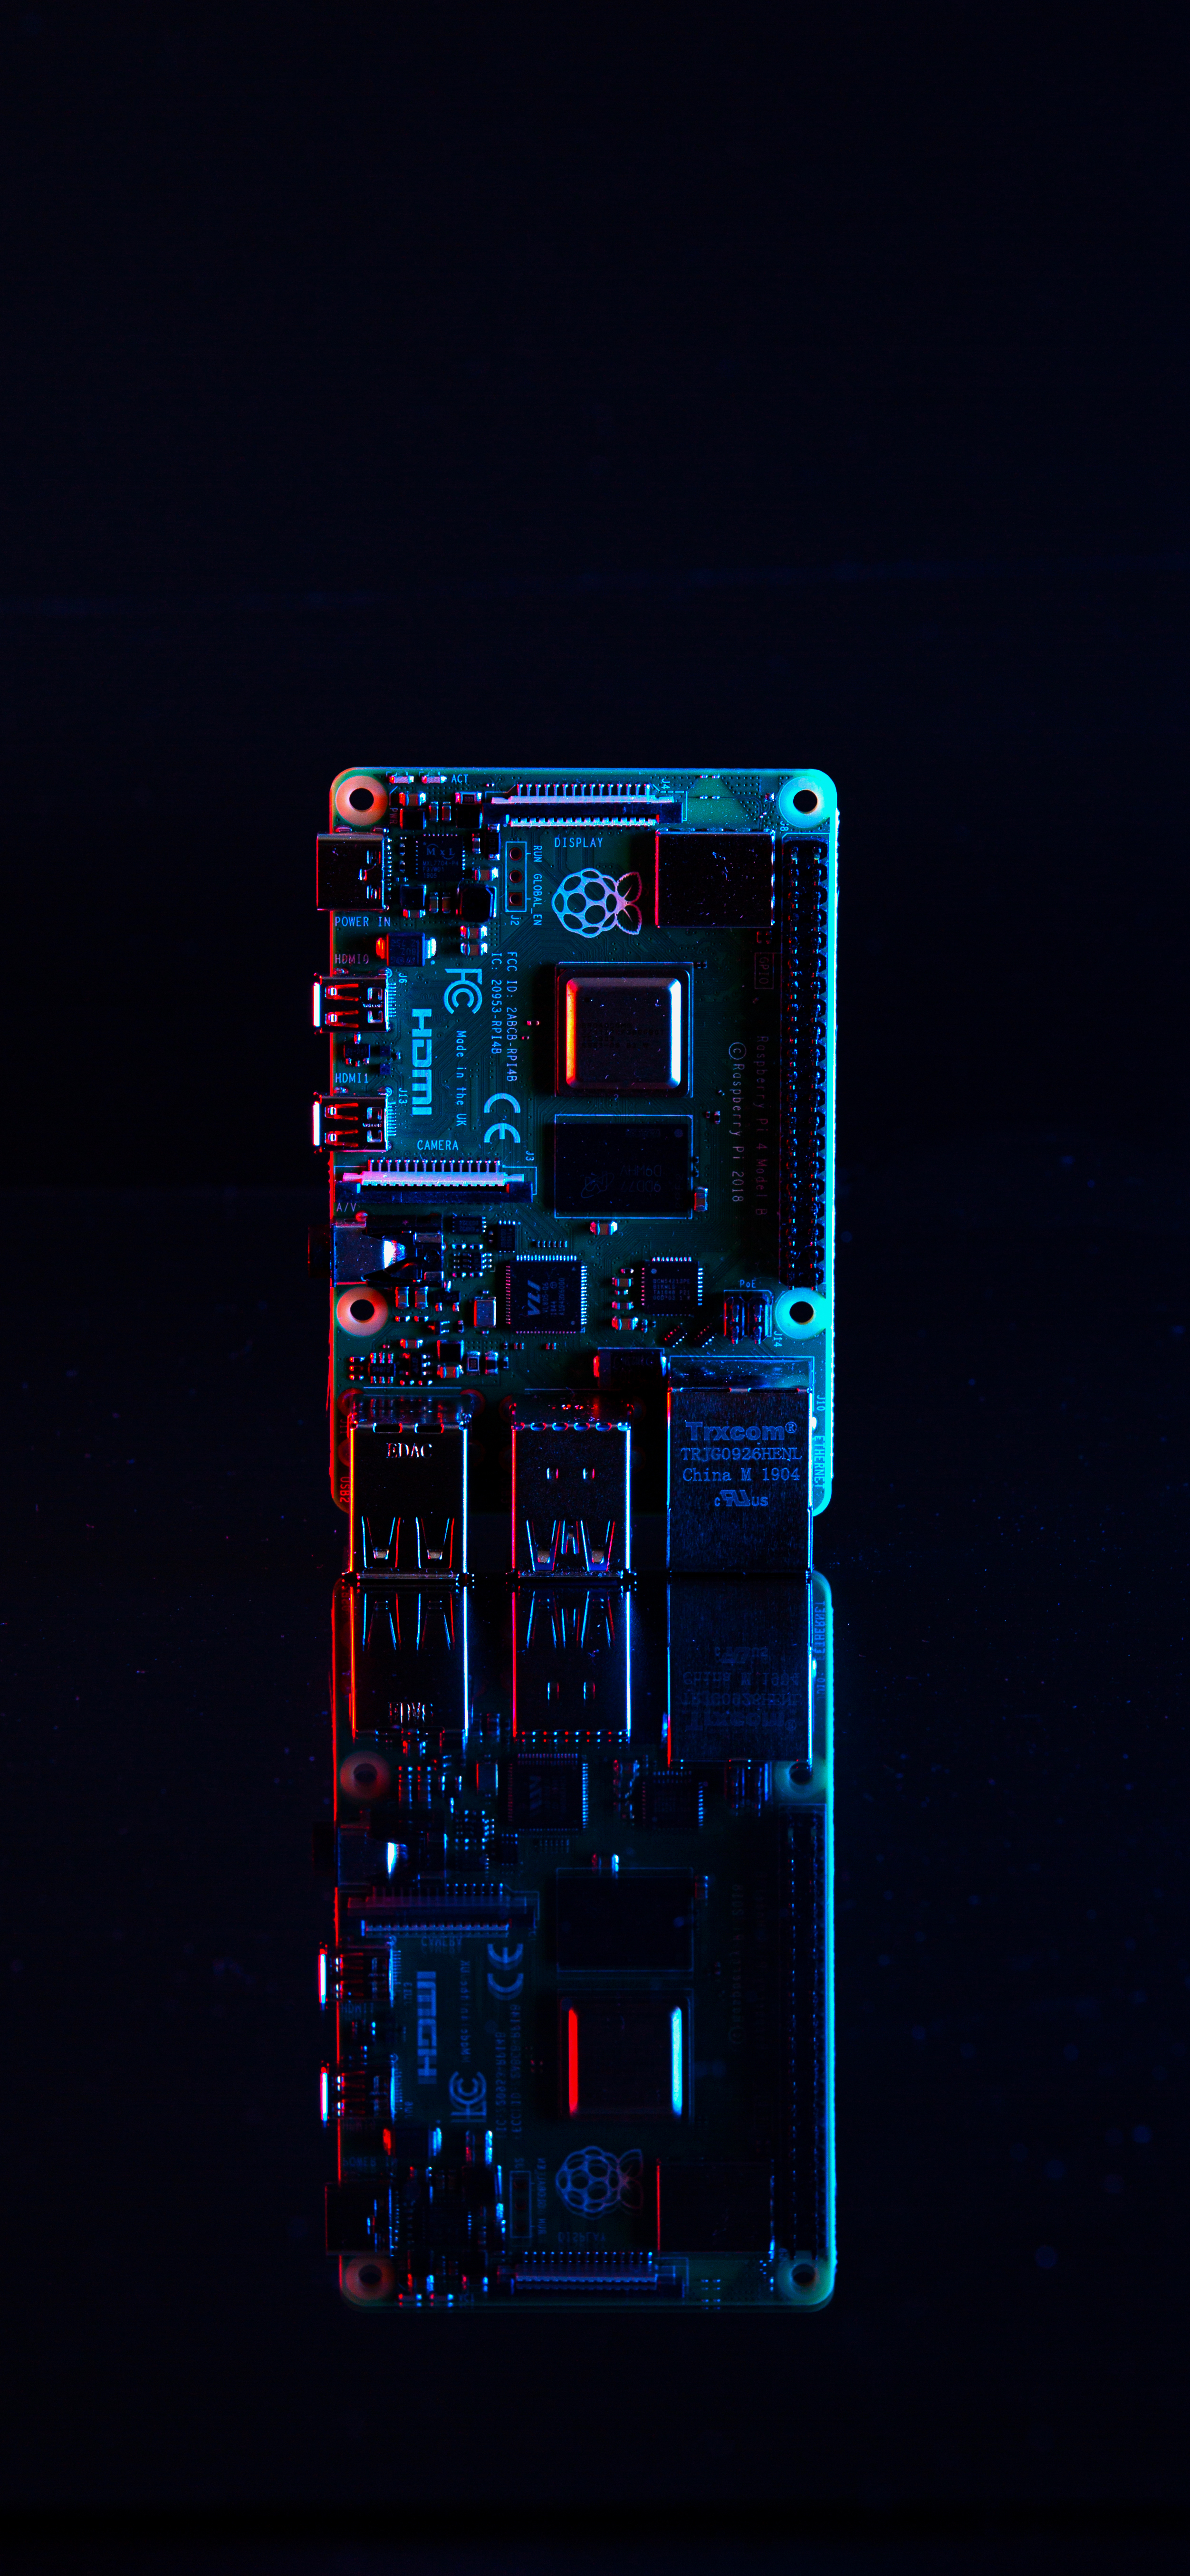 A Rather Snazzy Raspberry Pi 4 Wallpaper For Your Phone And Computer Raspberry Pi